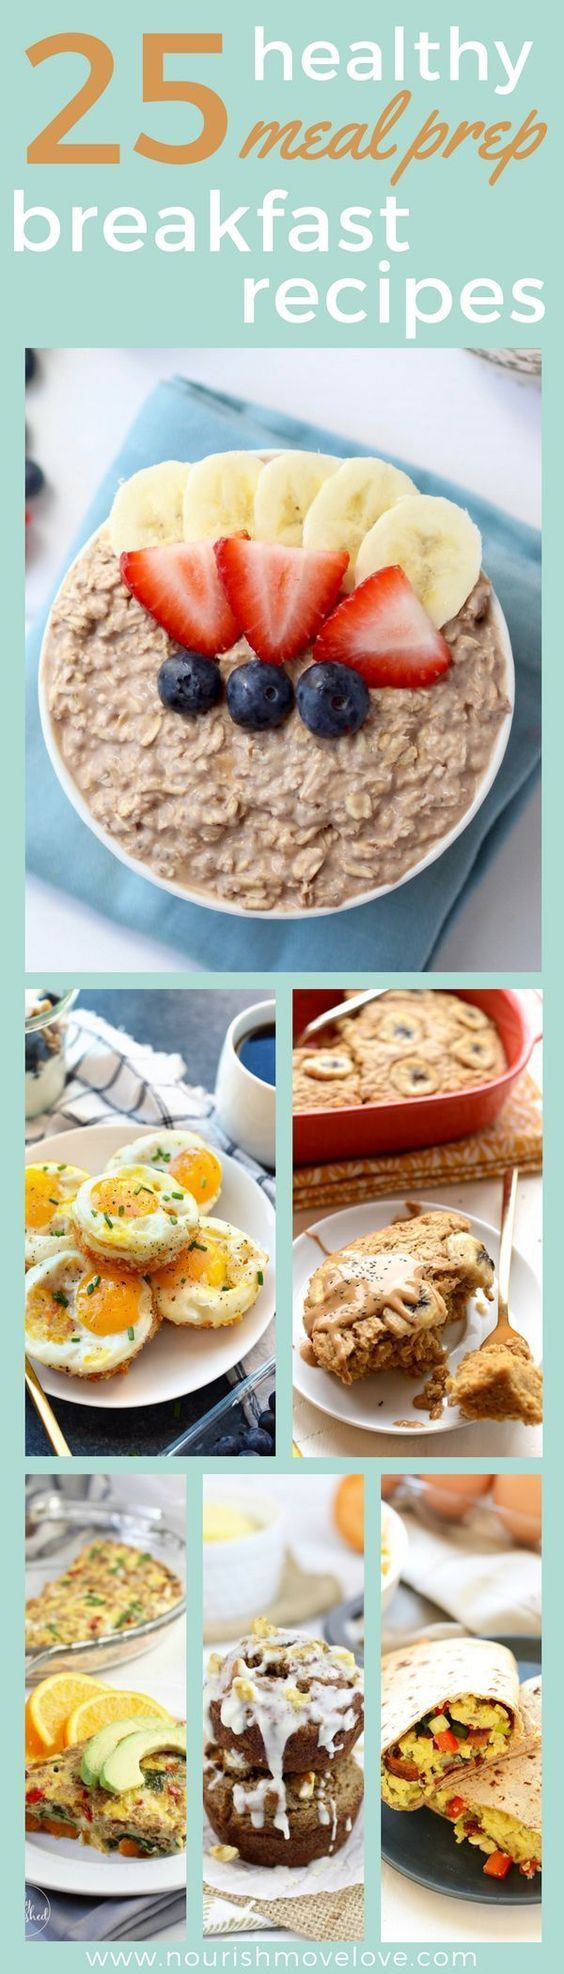 25 healthy meal prep breakfast recipes. Clean eating, simple recipes, easy ingre...